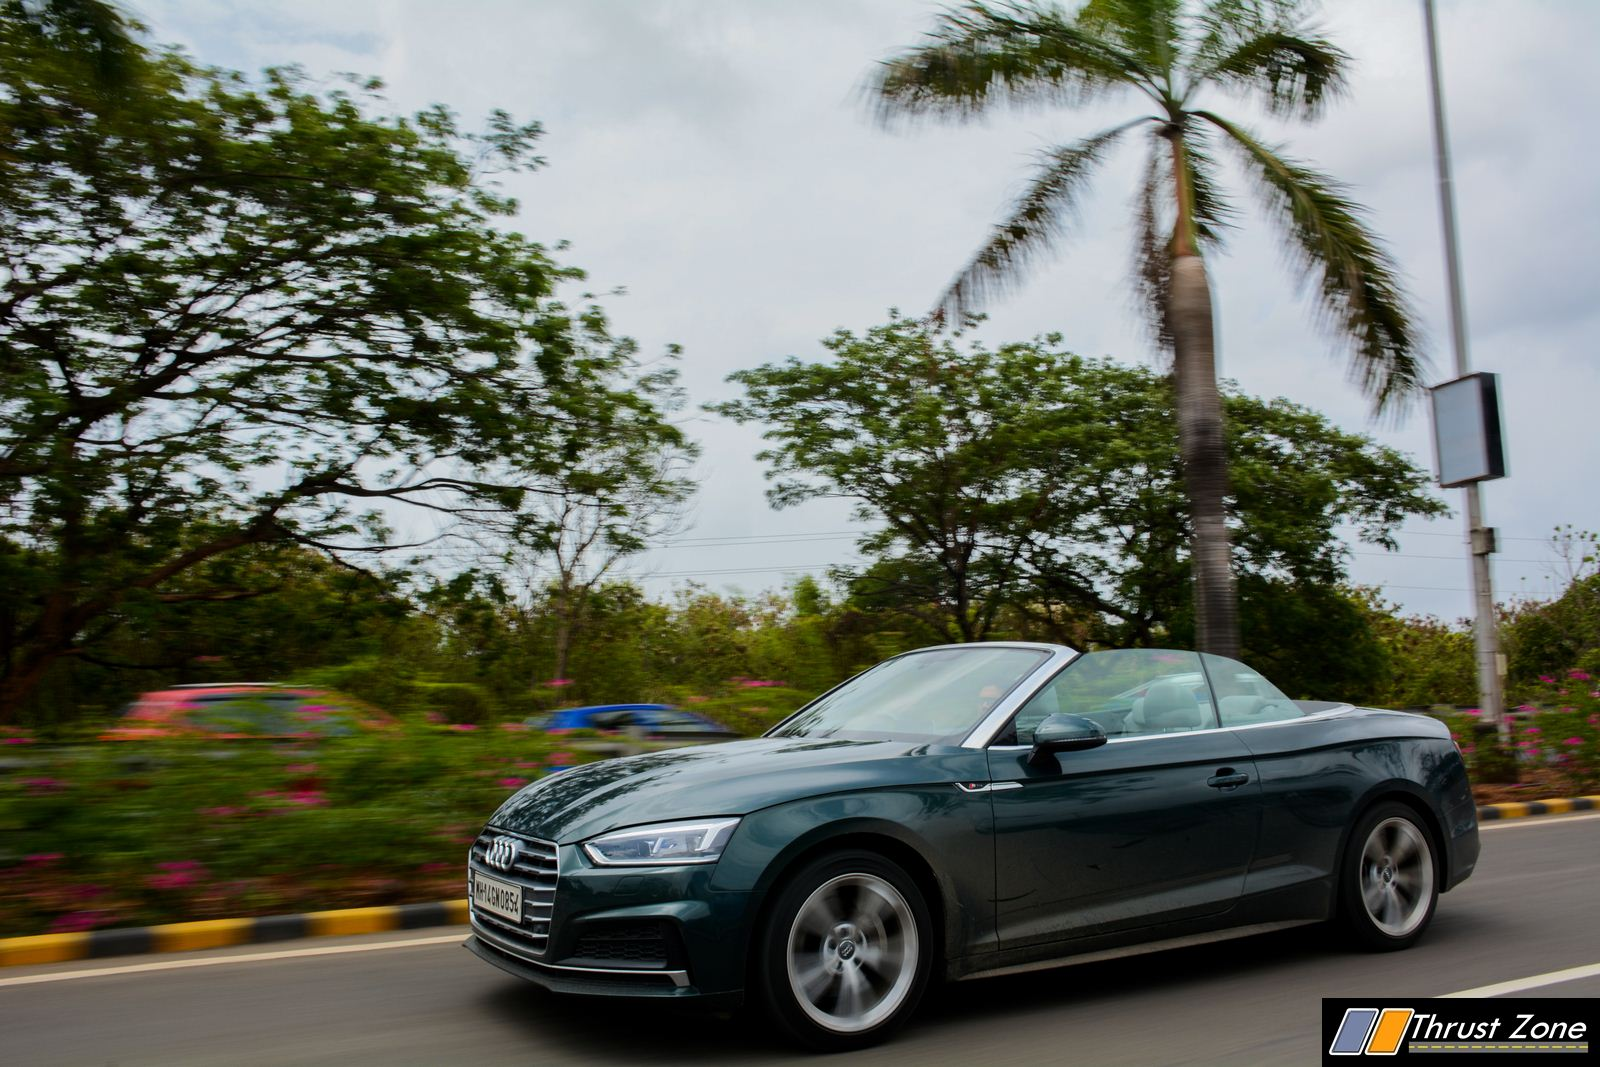 https://www.thrustzone.com/wp-content/uploads/2019/06/2019-Audi-A5-Cabriolet-Convertible-India-Diesel-Review-2.jpg